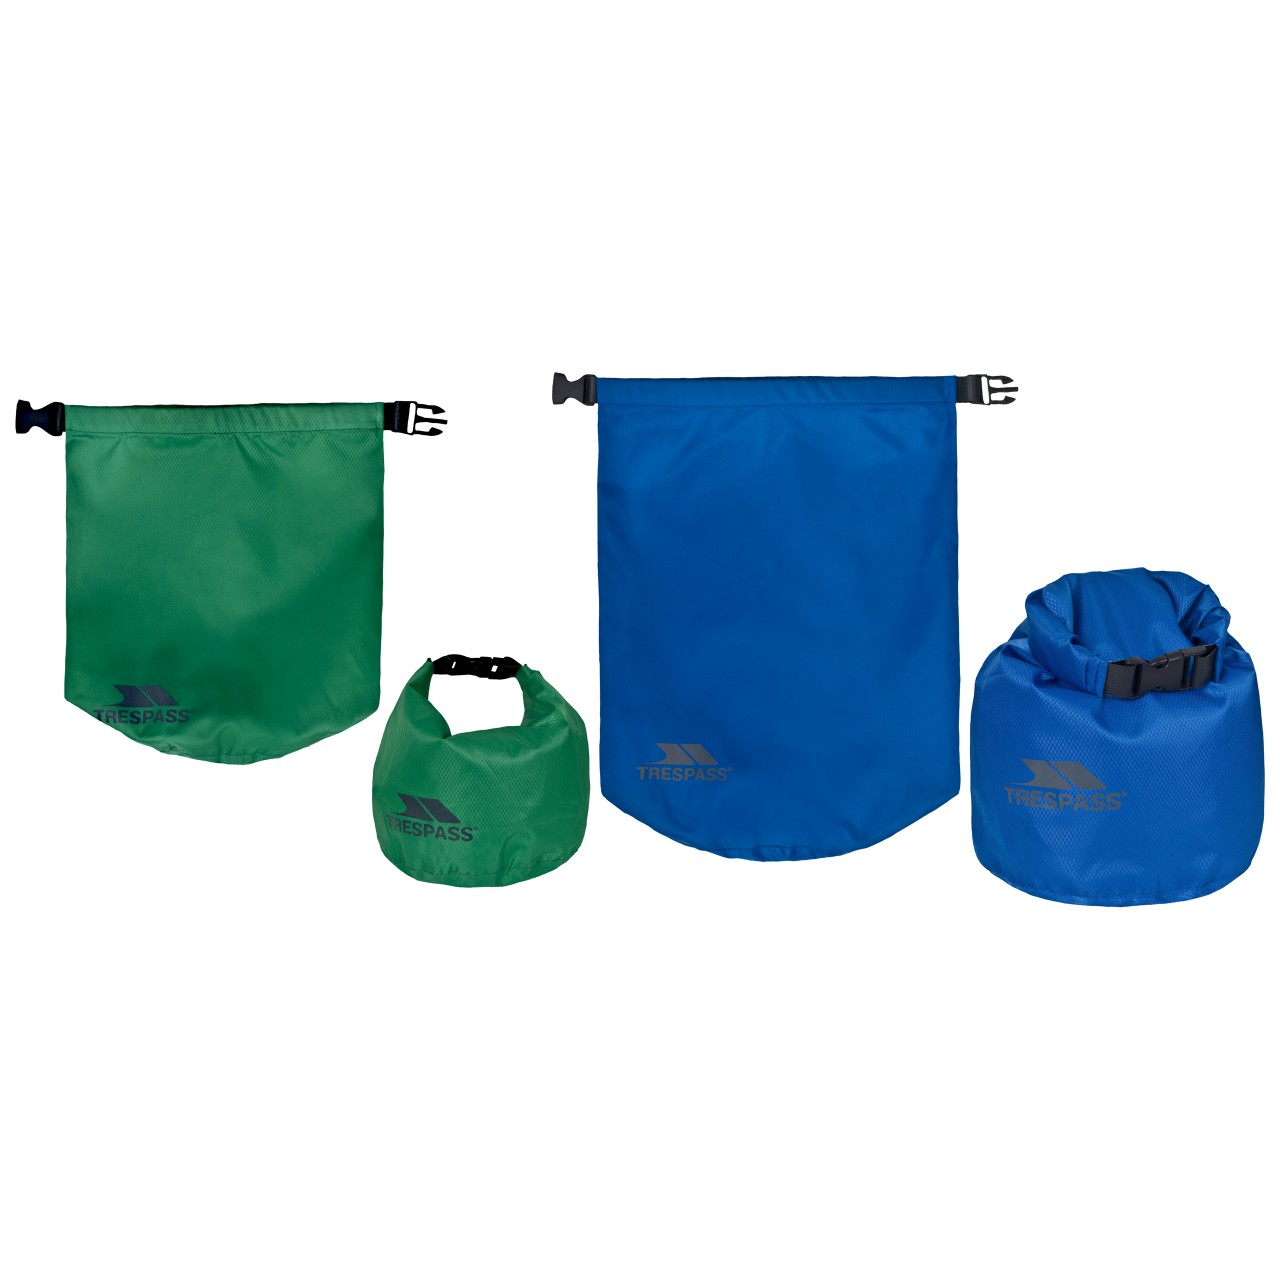 Trespass 2 Pack Dry Bags - Go Bag Item EXHILARATION DRY BAGS